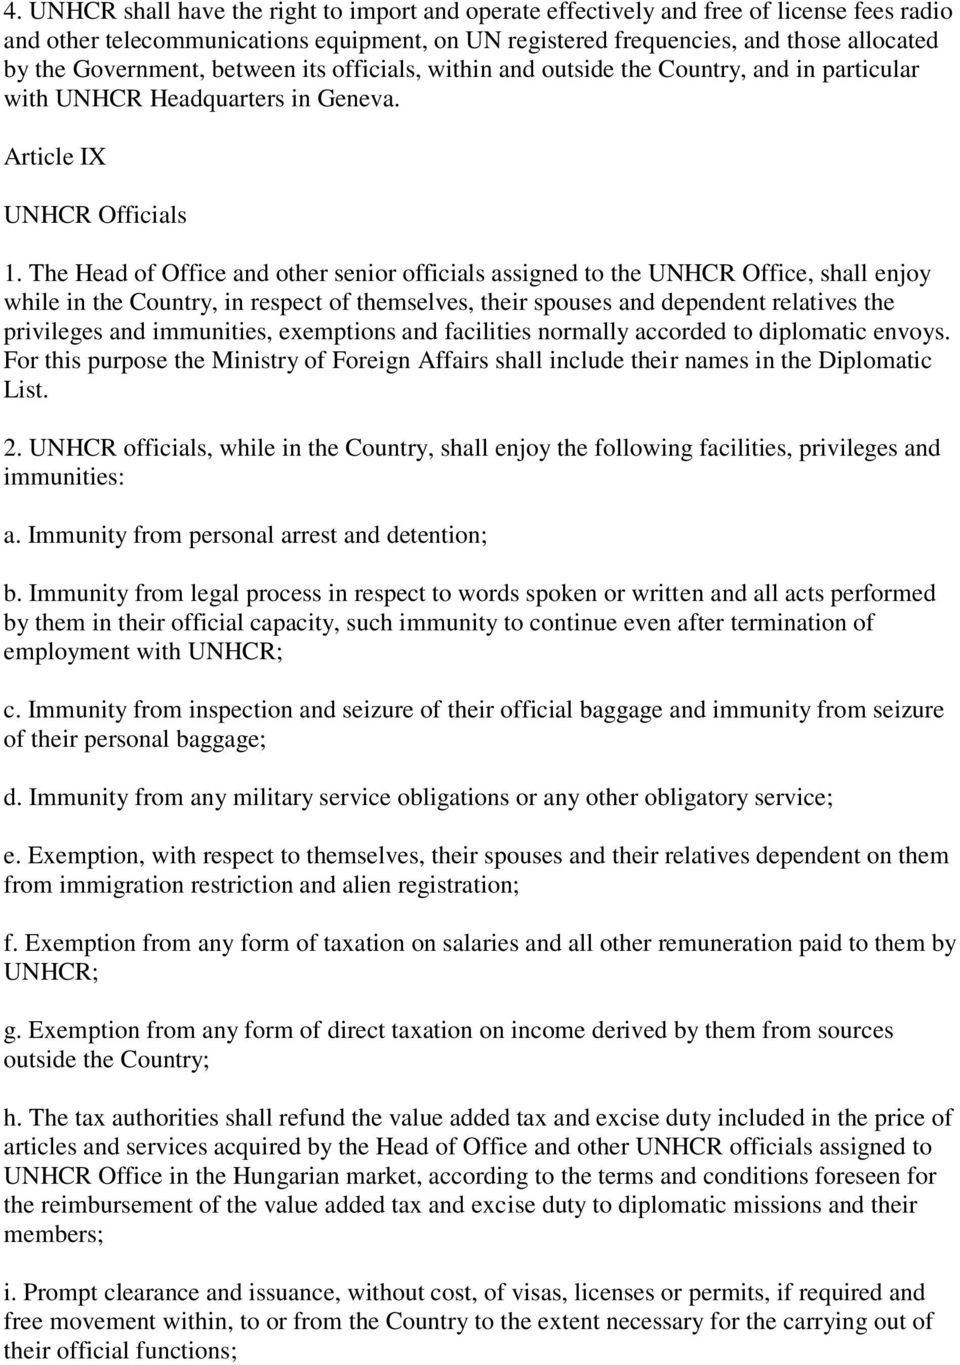 The Head of Office and other senior officials assigned to the UNHCR Office, shall enjoy while in the Country, in respect of themselves, their spouses and dependent relatives the privileges and